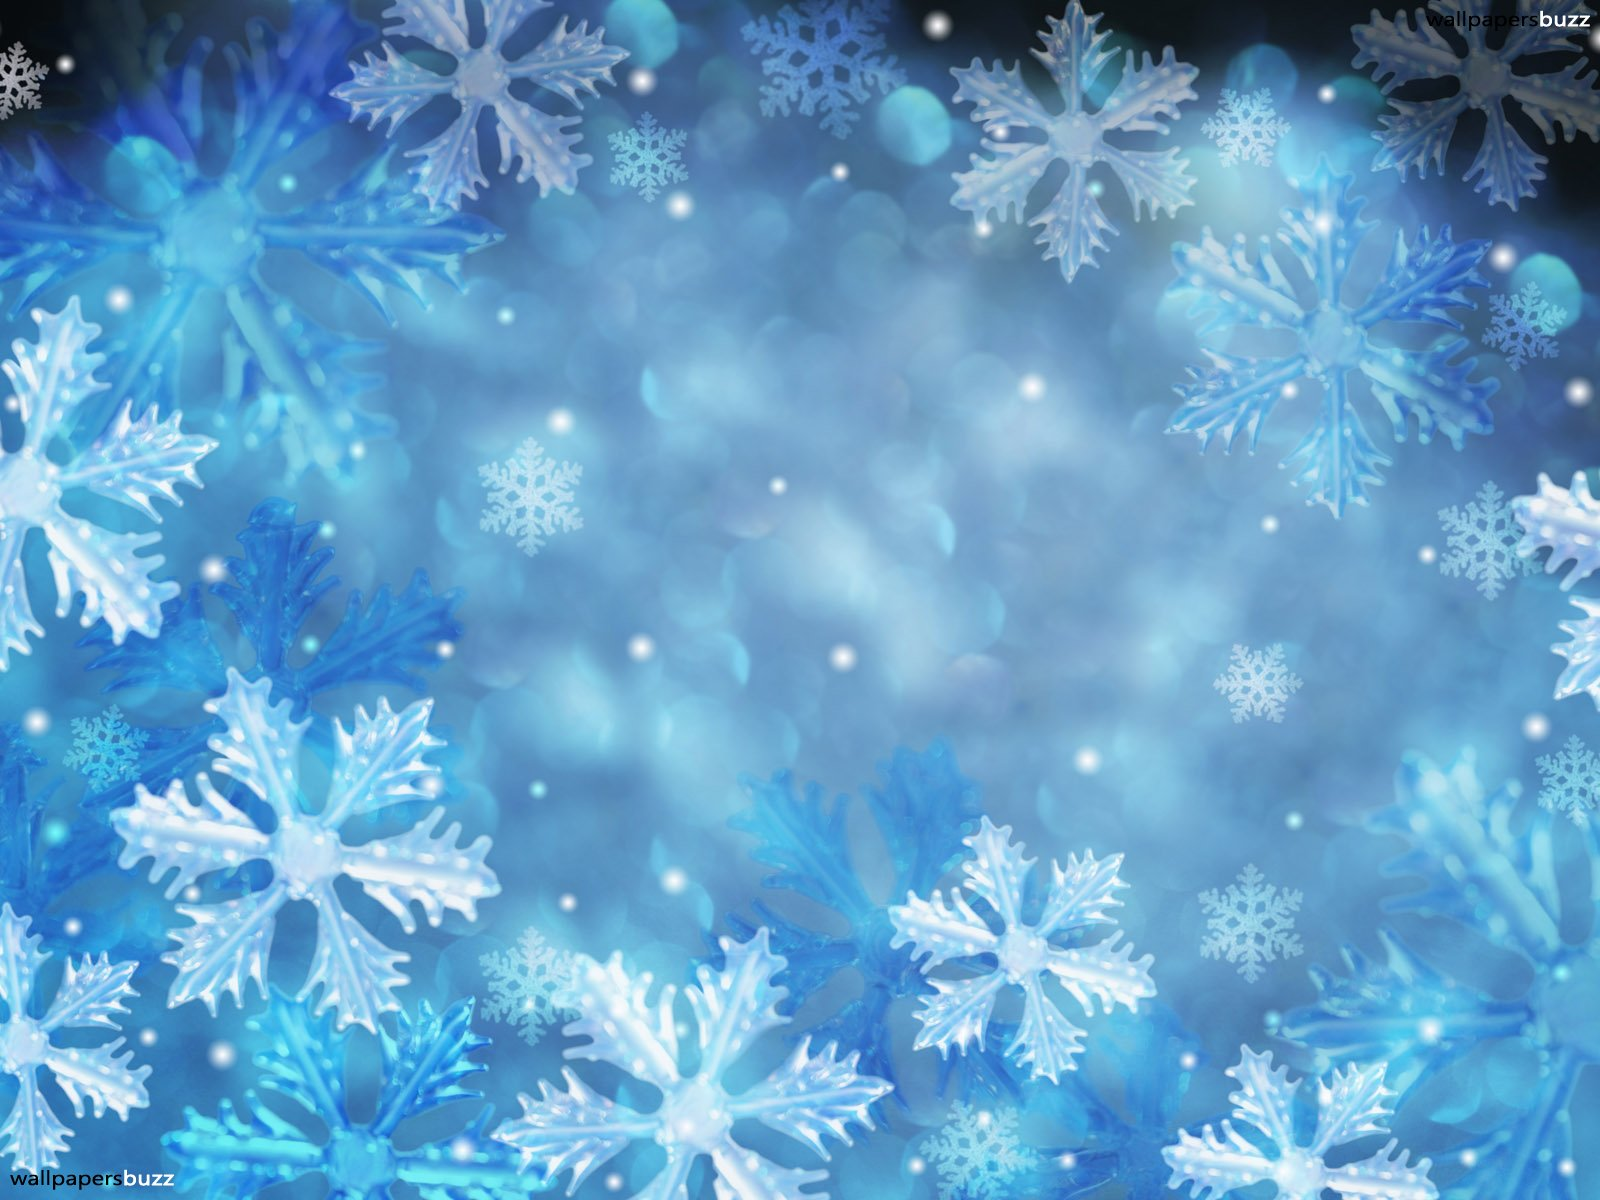 Snowflake Desktop Backgrounds Group (71+)